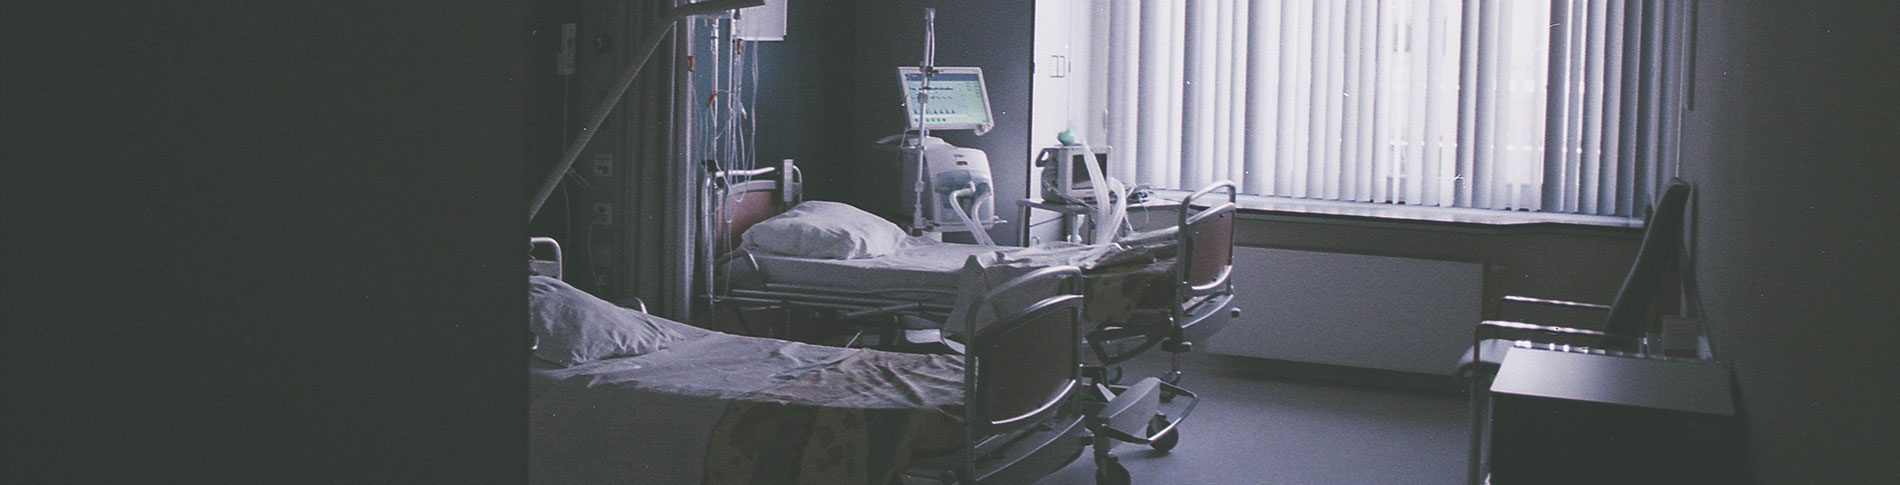 Emergency network connectivity for hospitals